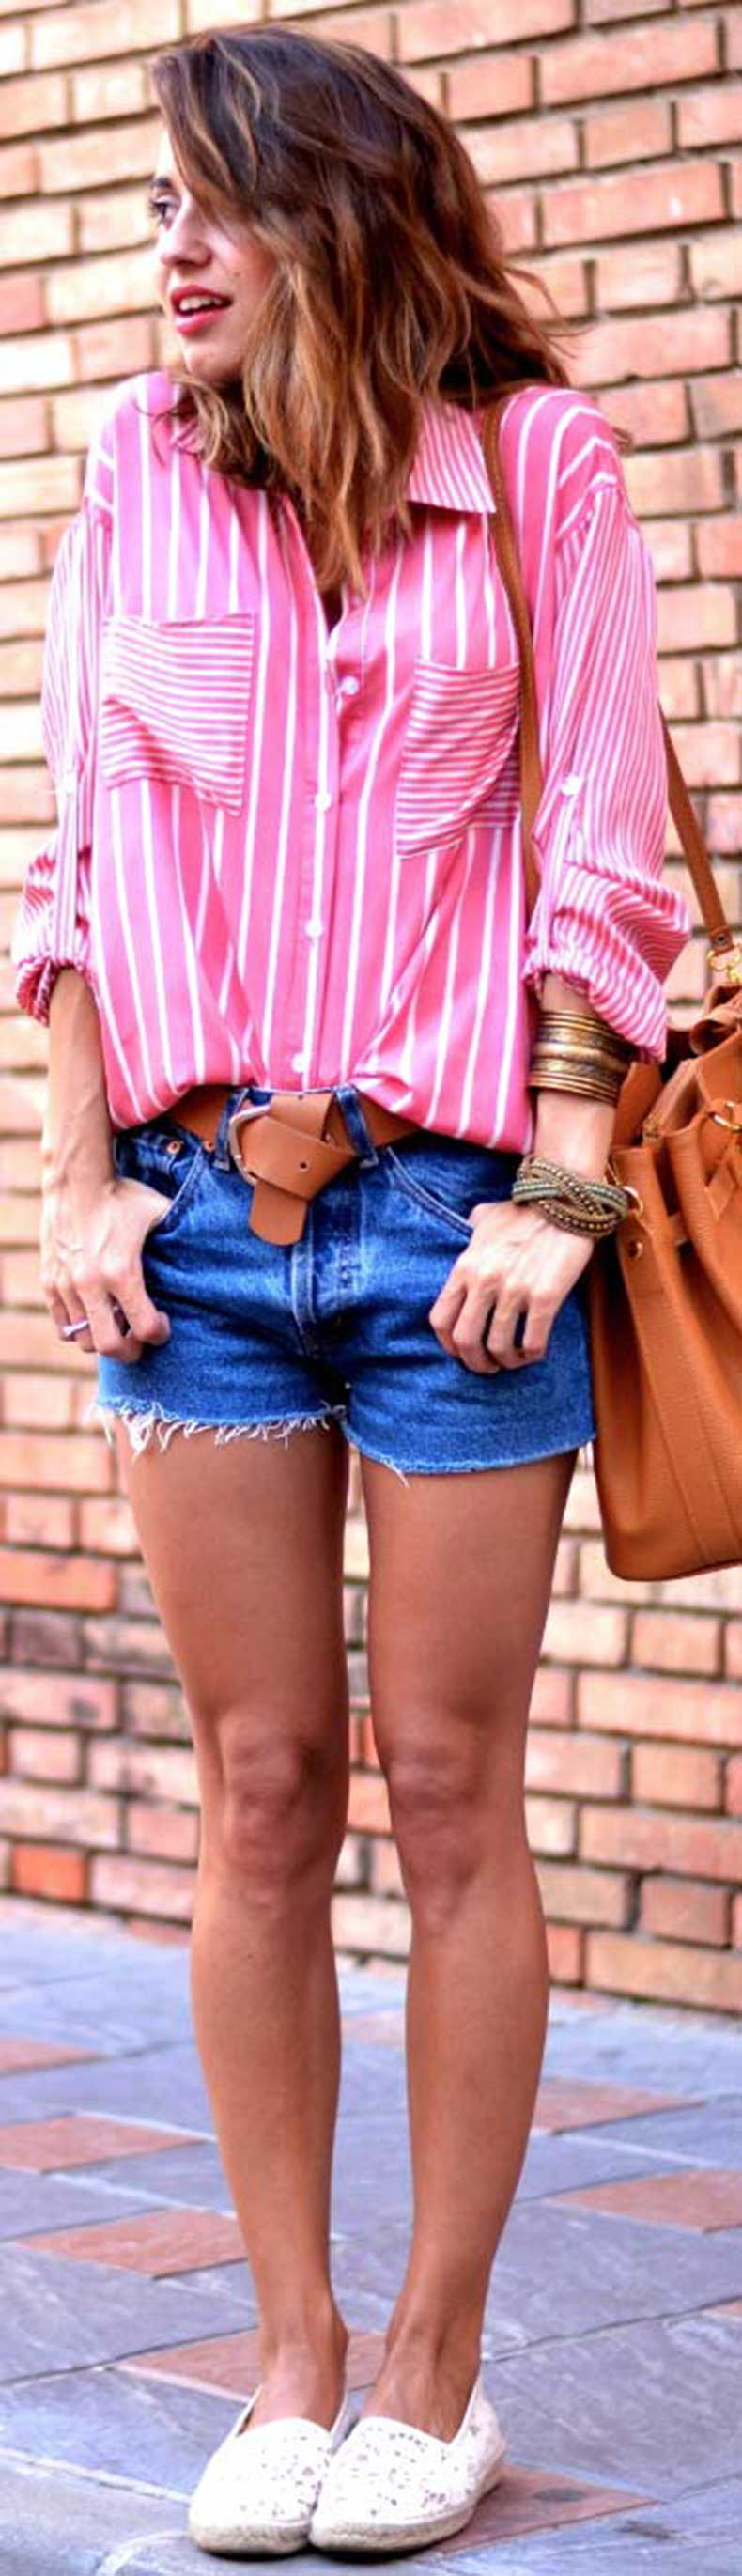 Long-Sleeve-Blouse-Denim-Shorts-Outfit